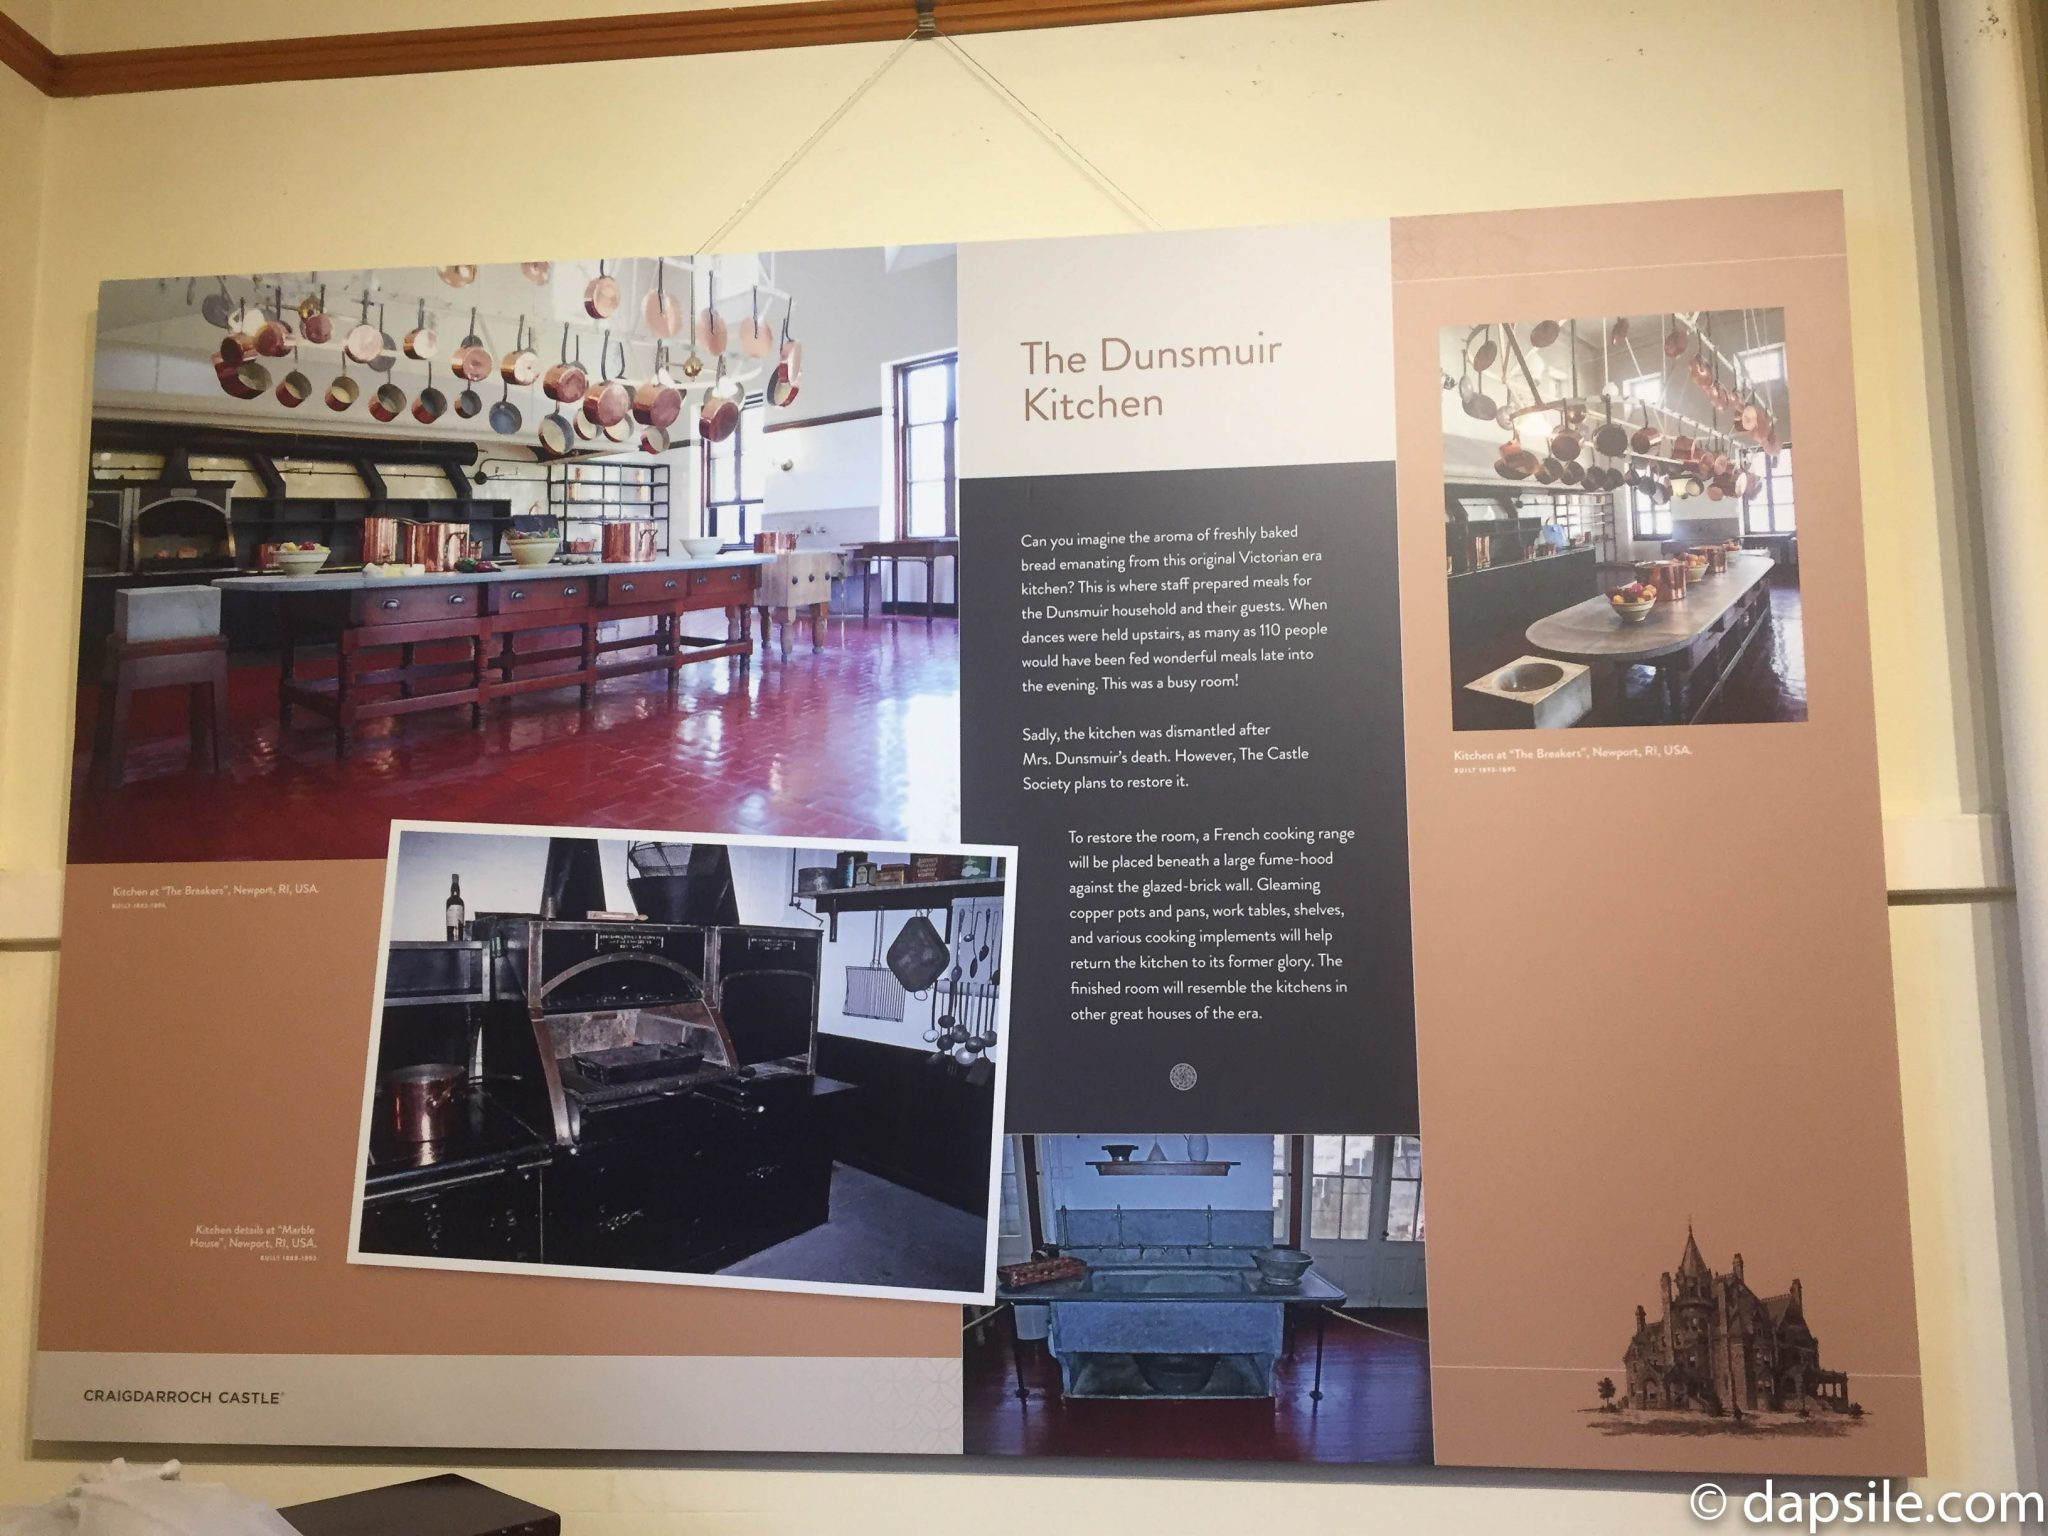 Future Plans for the Kitchen at Craigdarroch Castle